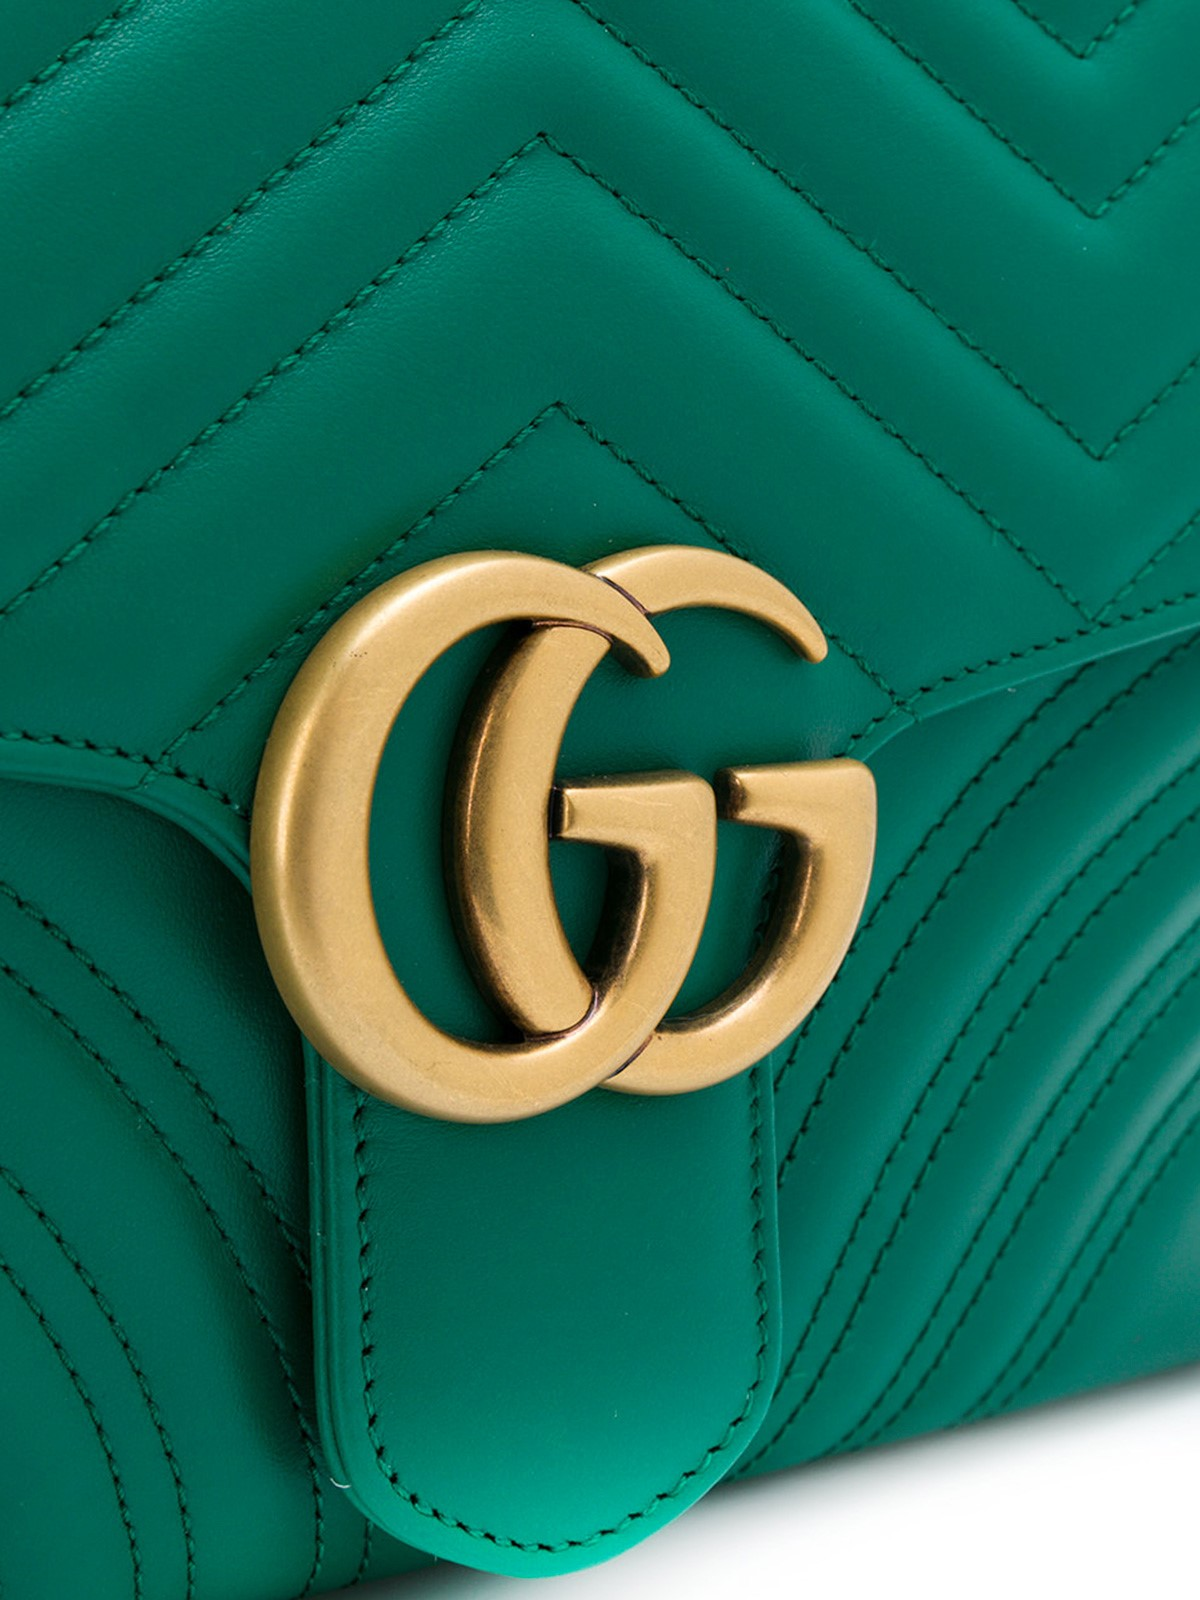 gucci GG MARMONT SHOULDER BAG available on montiboutique.com - 21477 76e25b7bdd87d